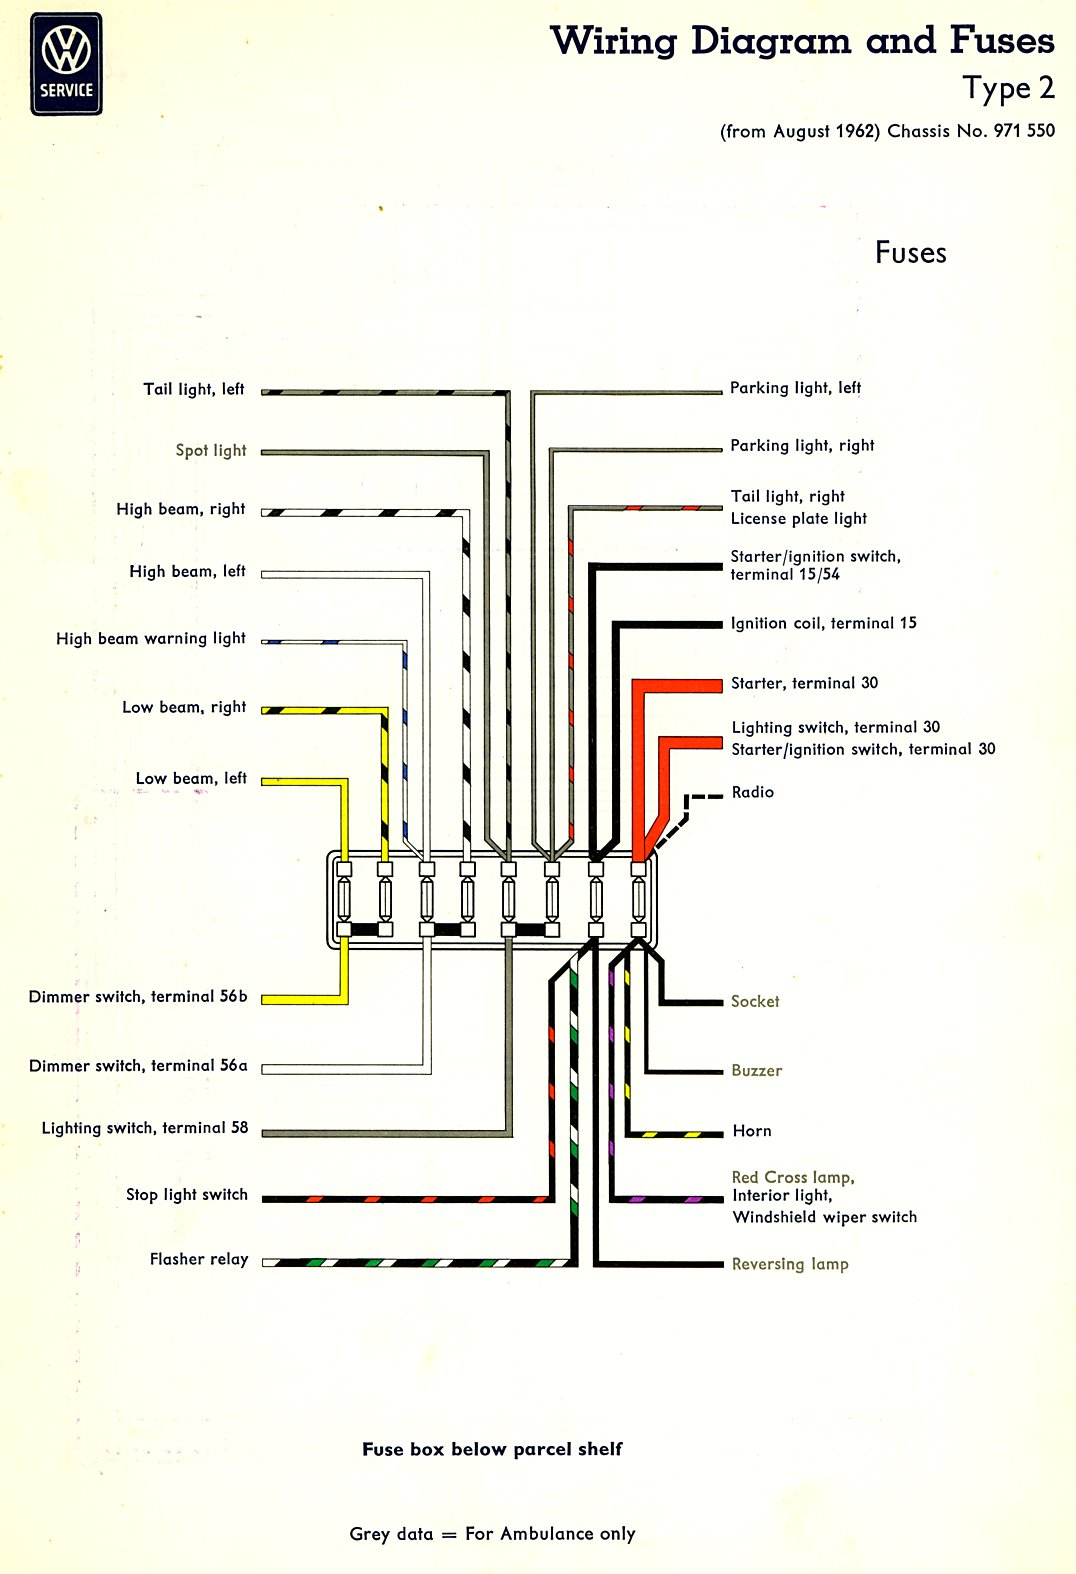 bus_63_fuses thesamba com type 2 wiring diagrams 64 valiant wiring diagram at readyjetset.co